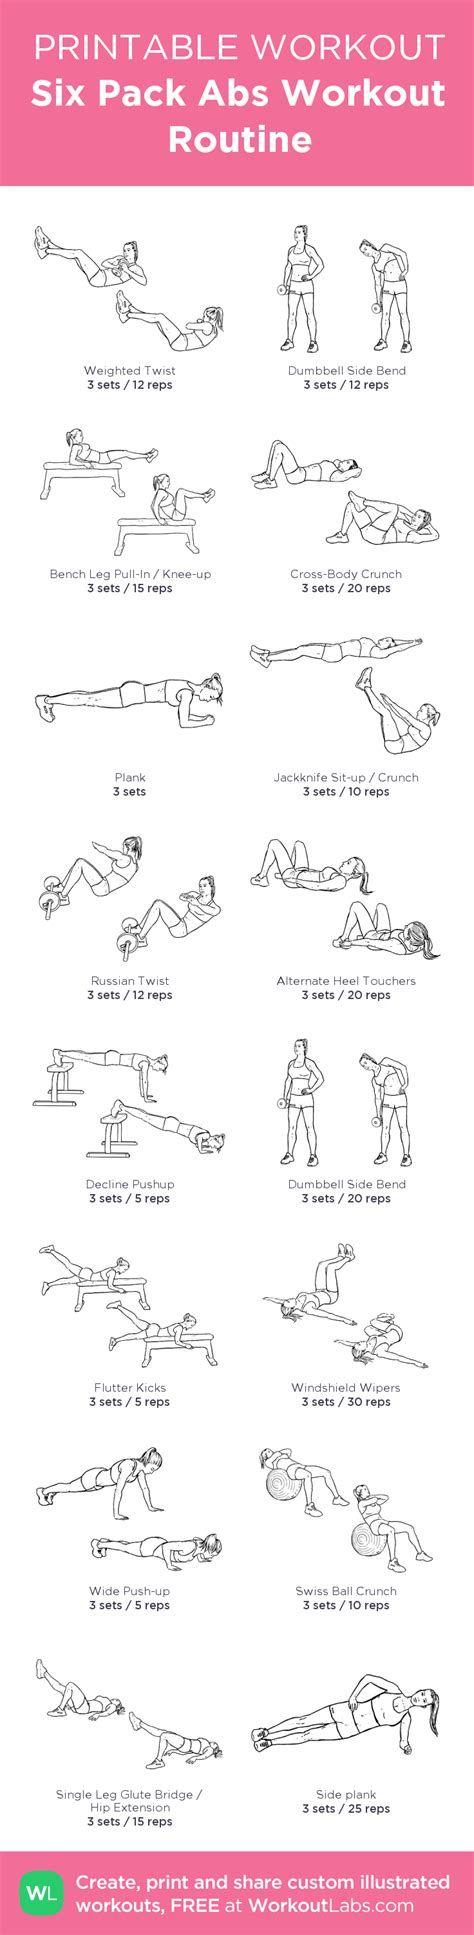 six pack abs workout routine my custom printable workout by workoutlabs workoutlabs